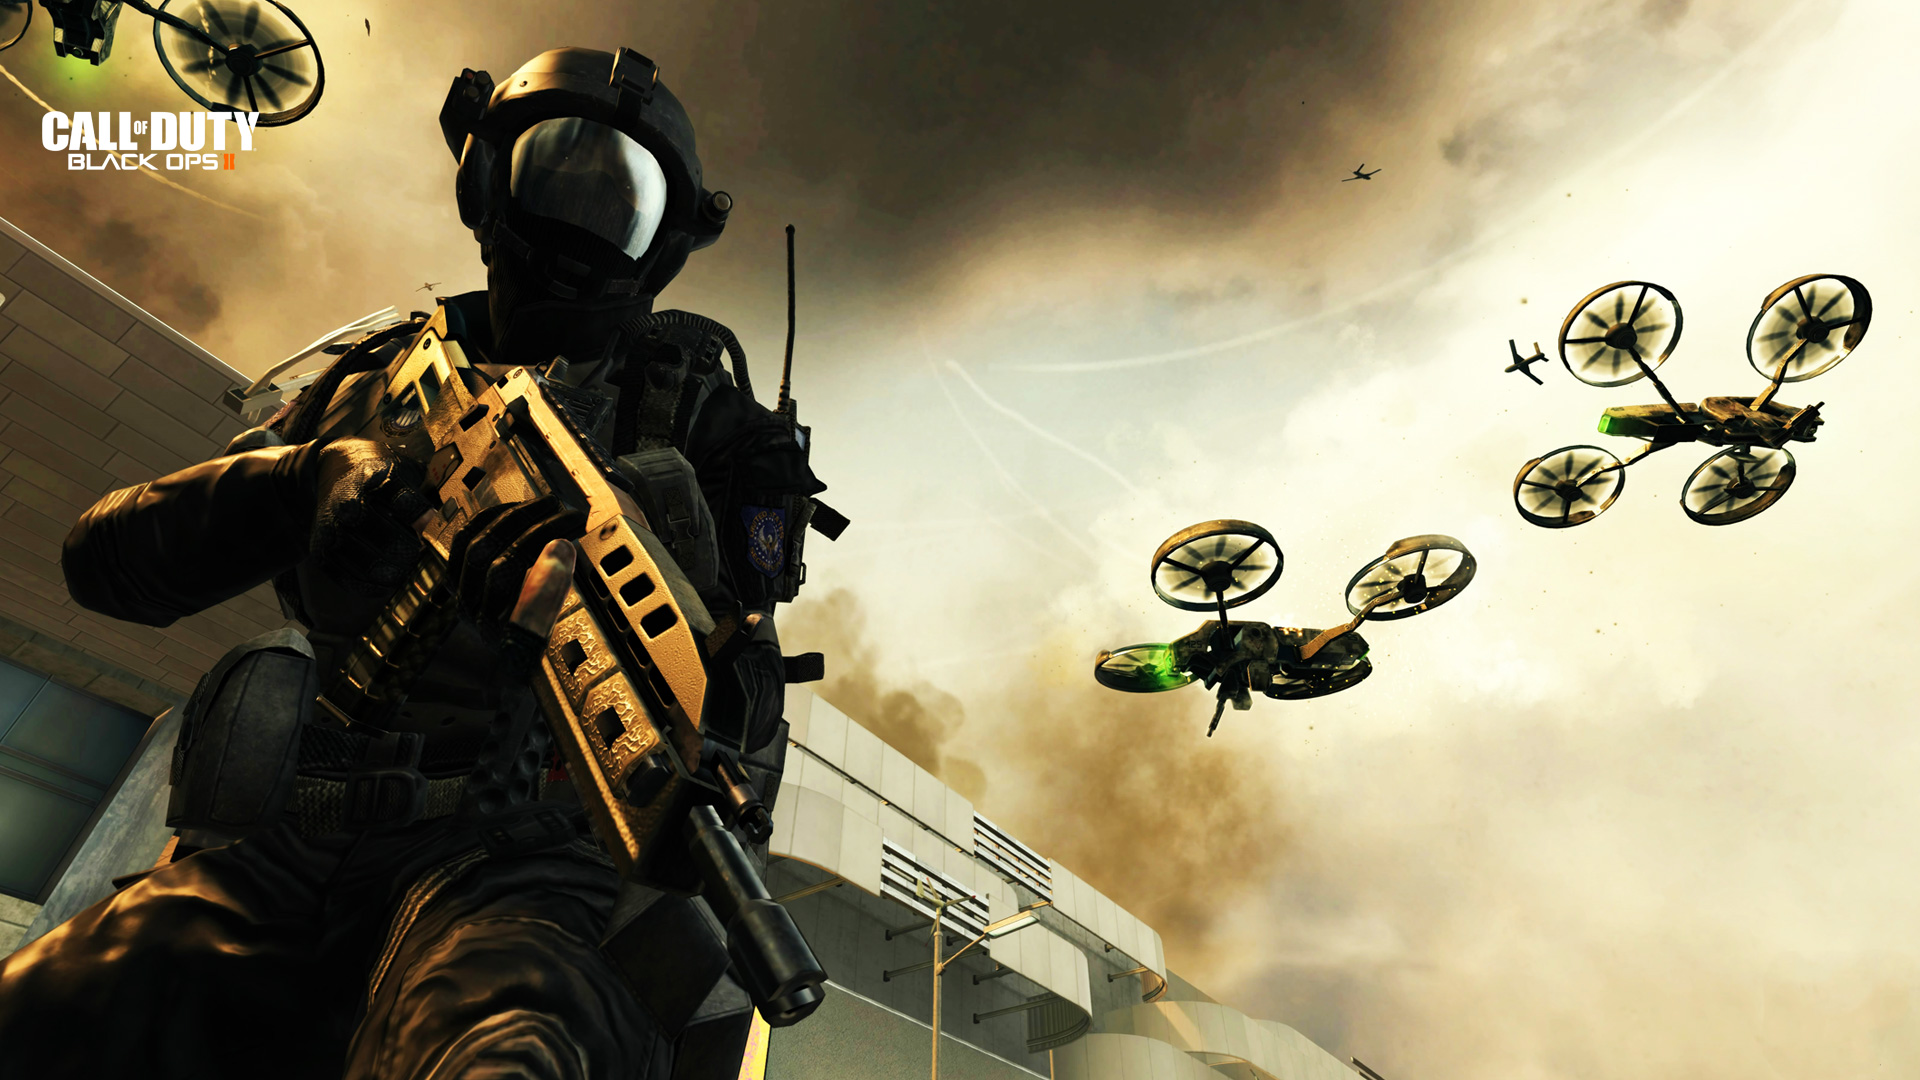 Call of Duty Black Ops 2 wallpaper 6